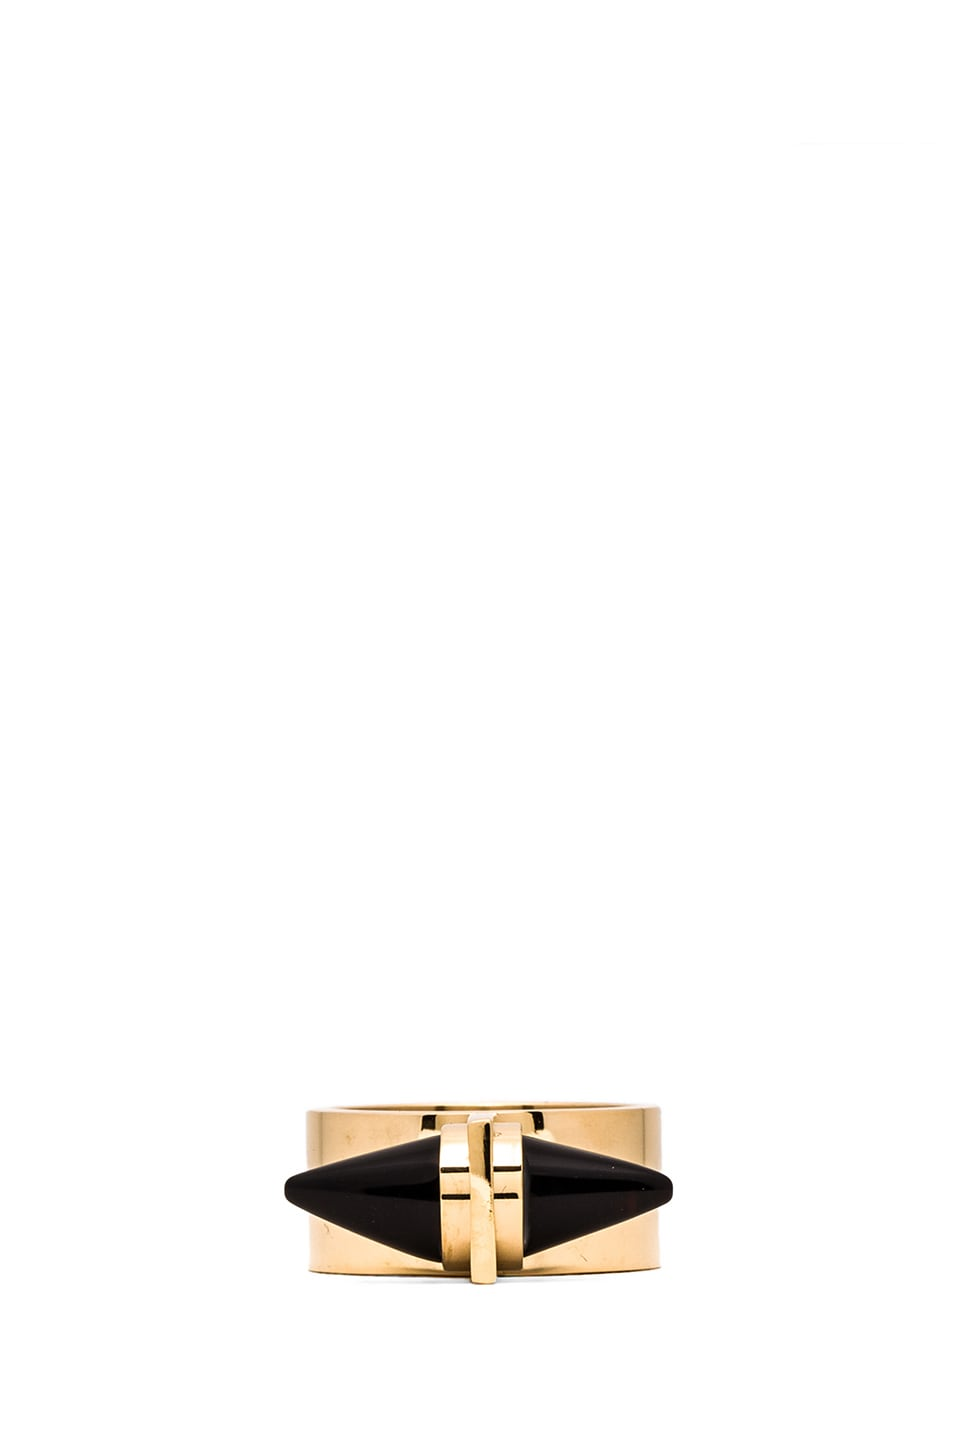 Amber Sceats Alexia Ring in Black & Gold